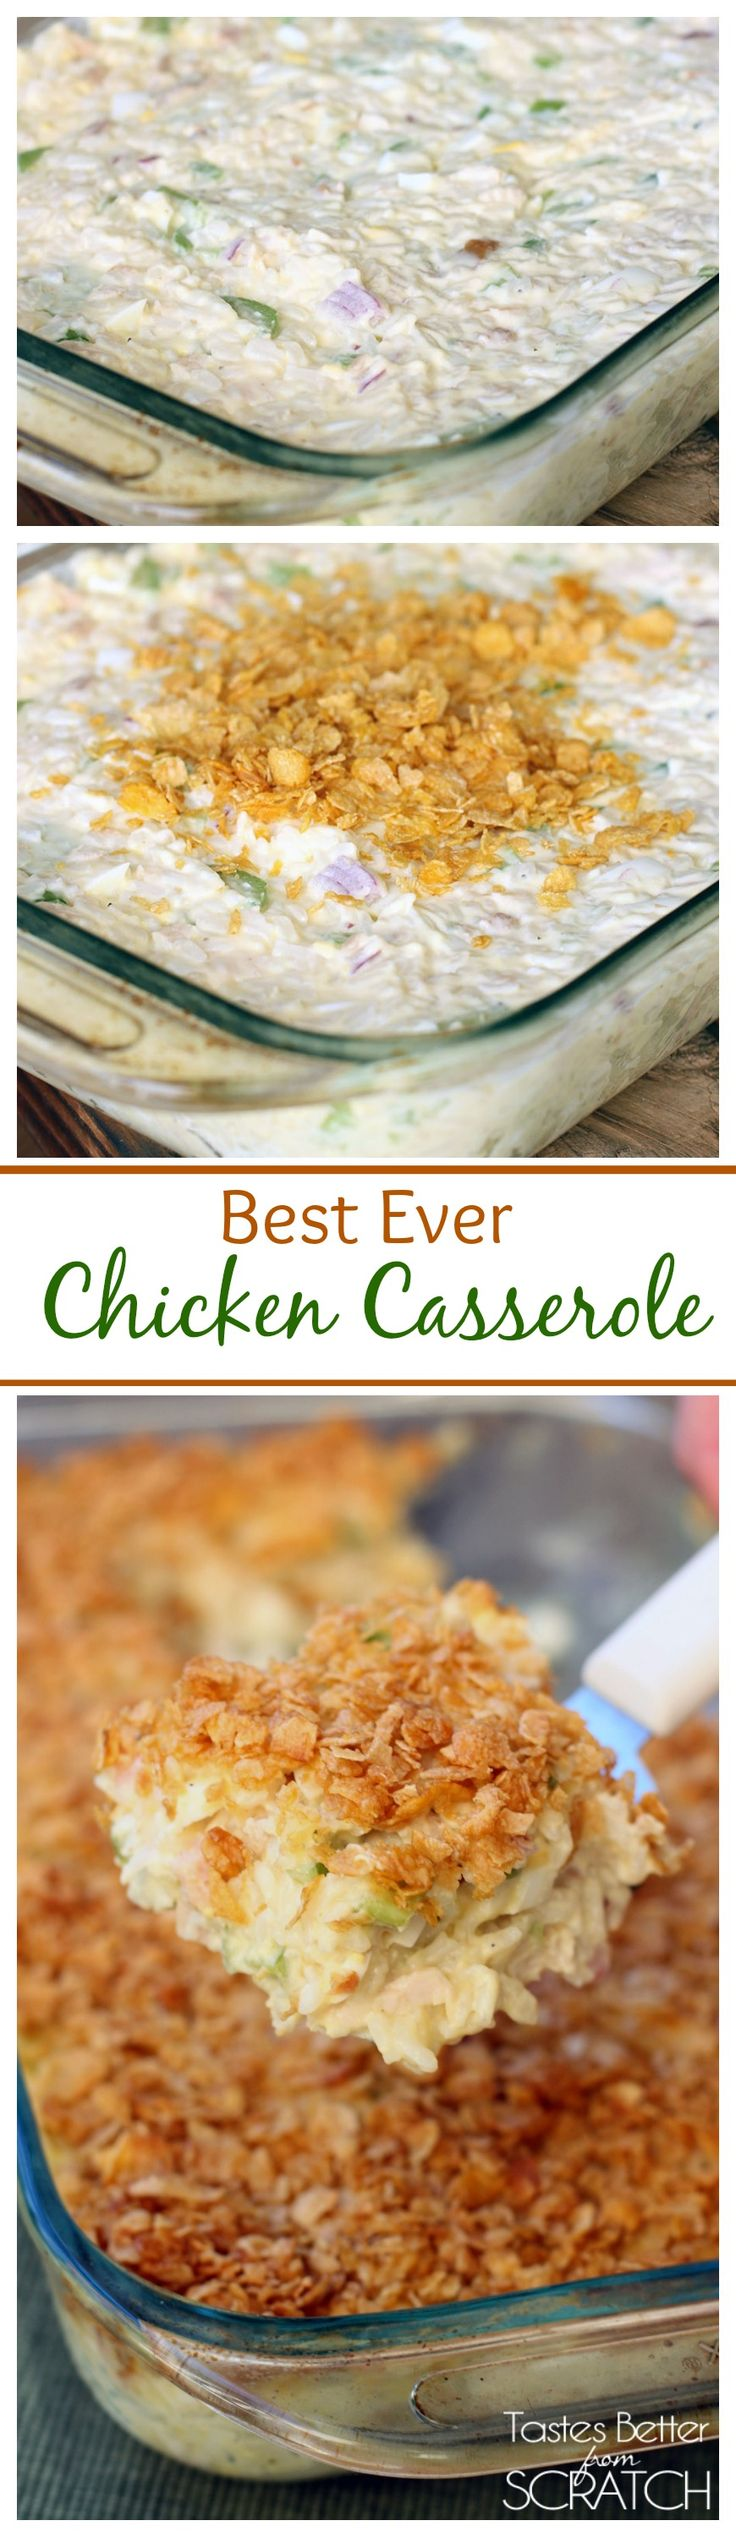 Best Chicken Casserole ever!